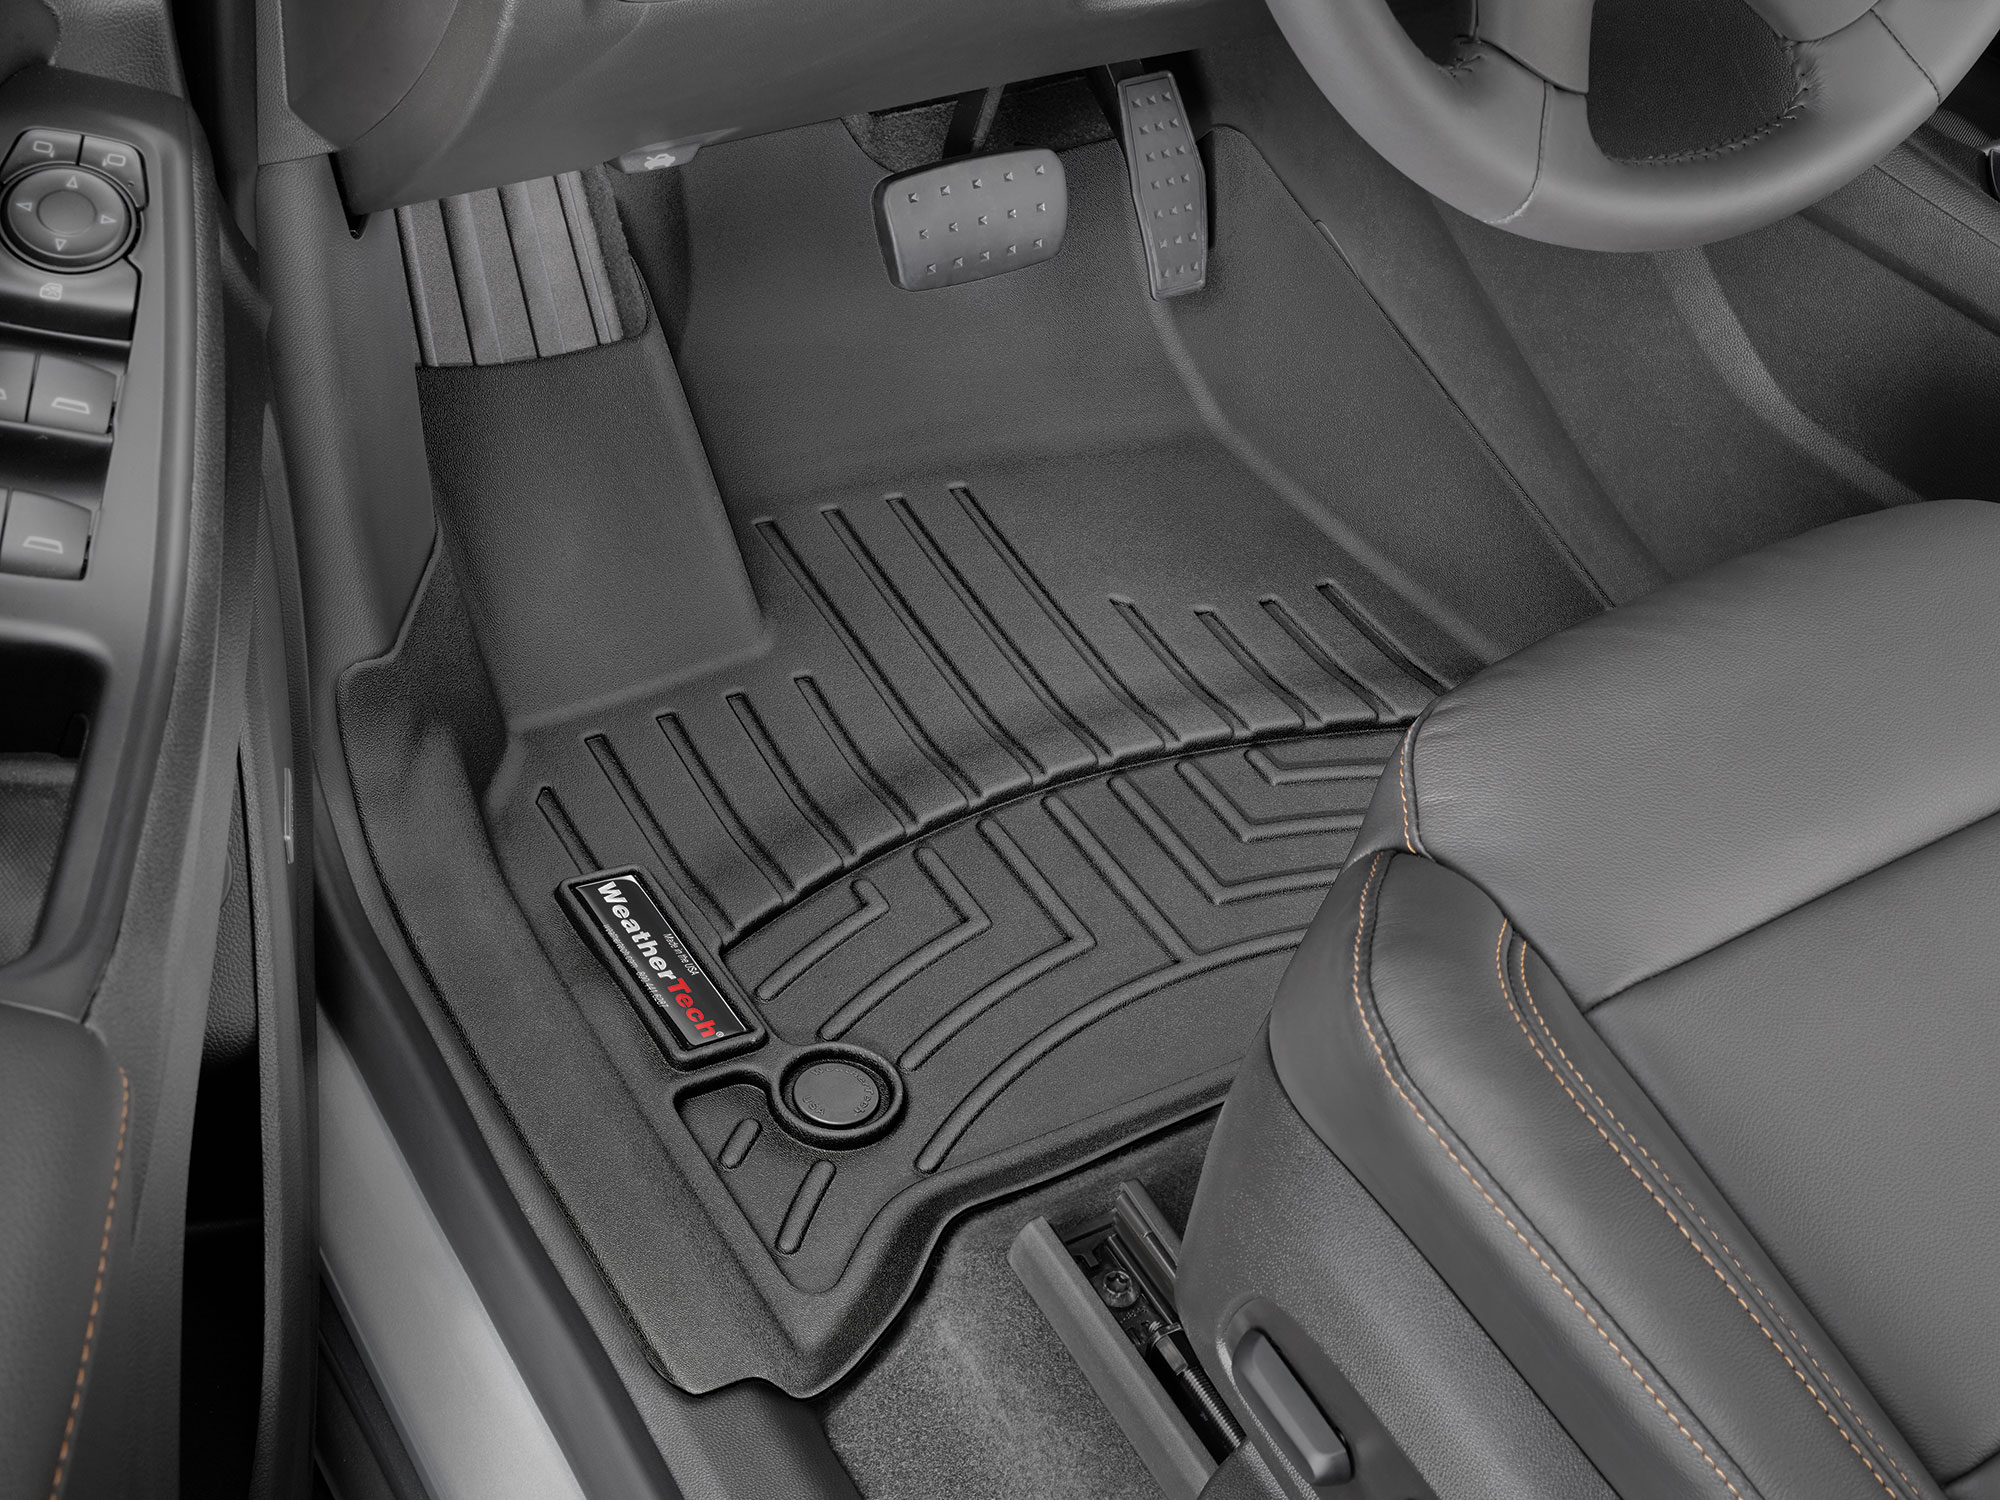 2018 Chevrolet Traverse Floor Mats Laser Measured For A Perfect Fit Weathertech